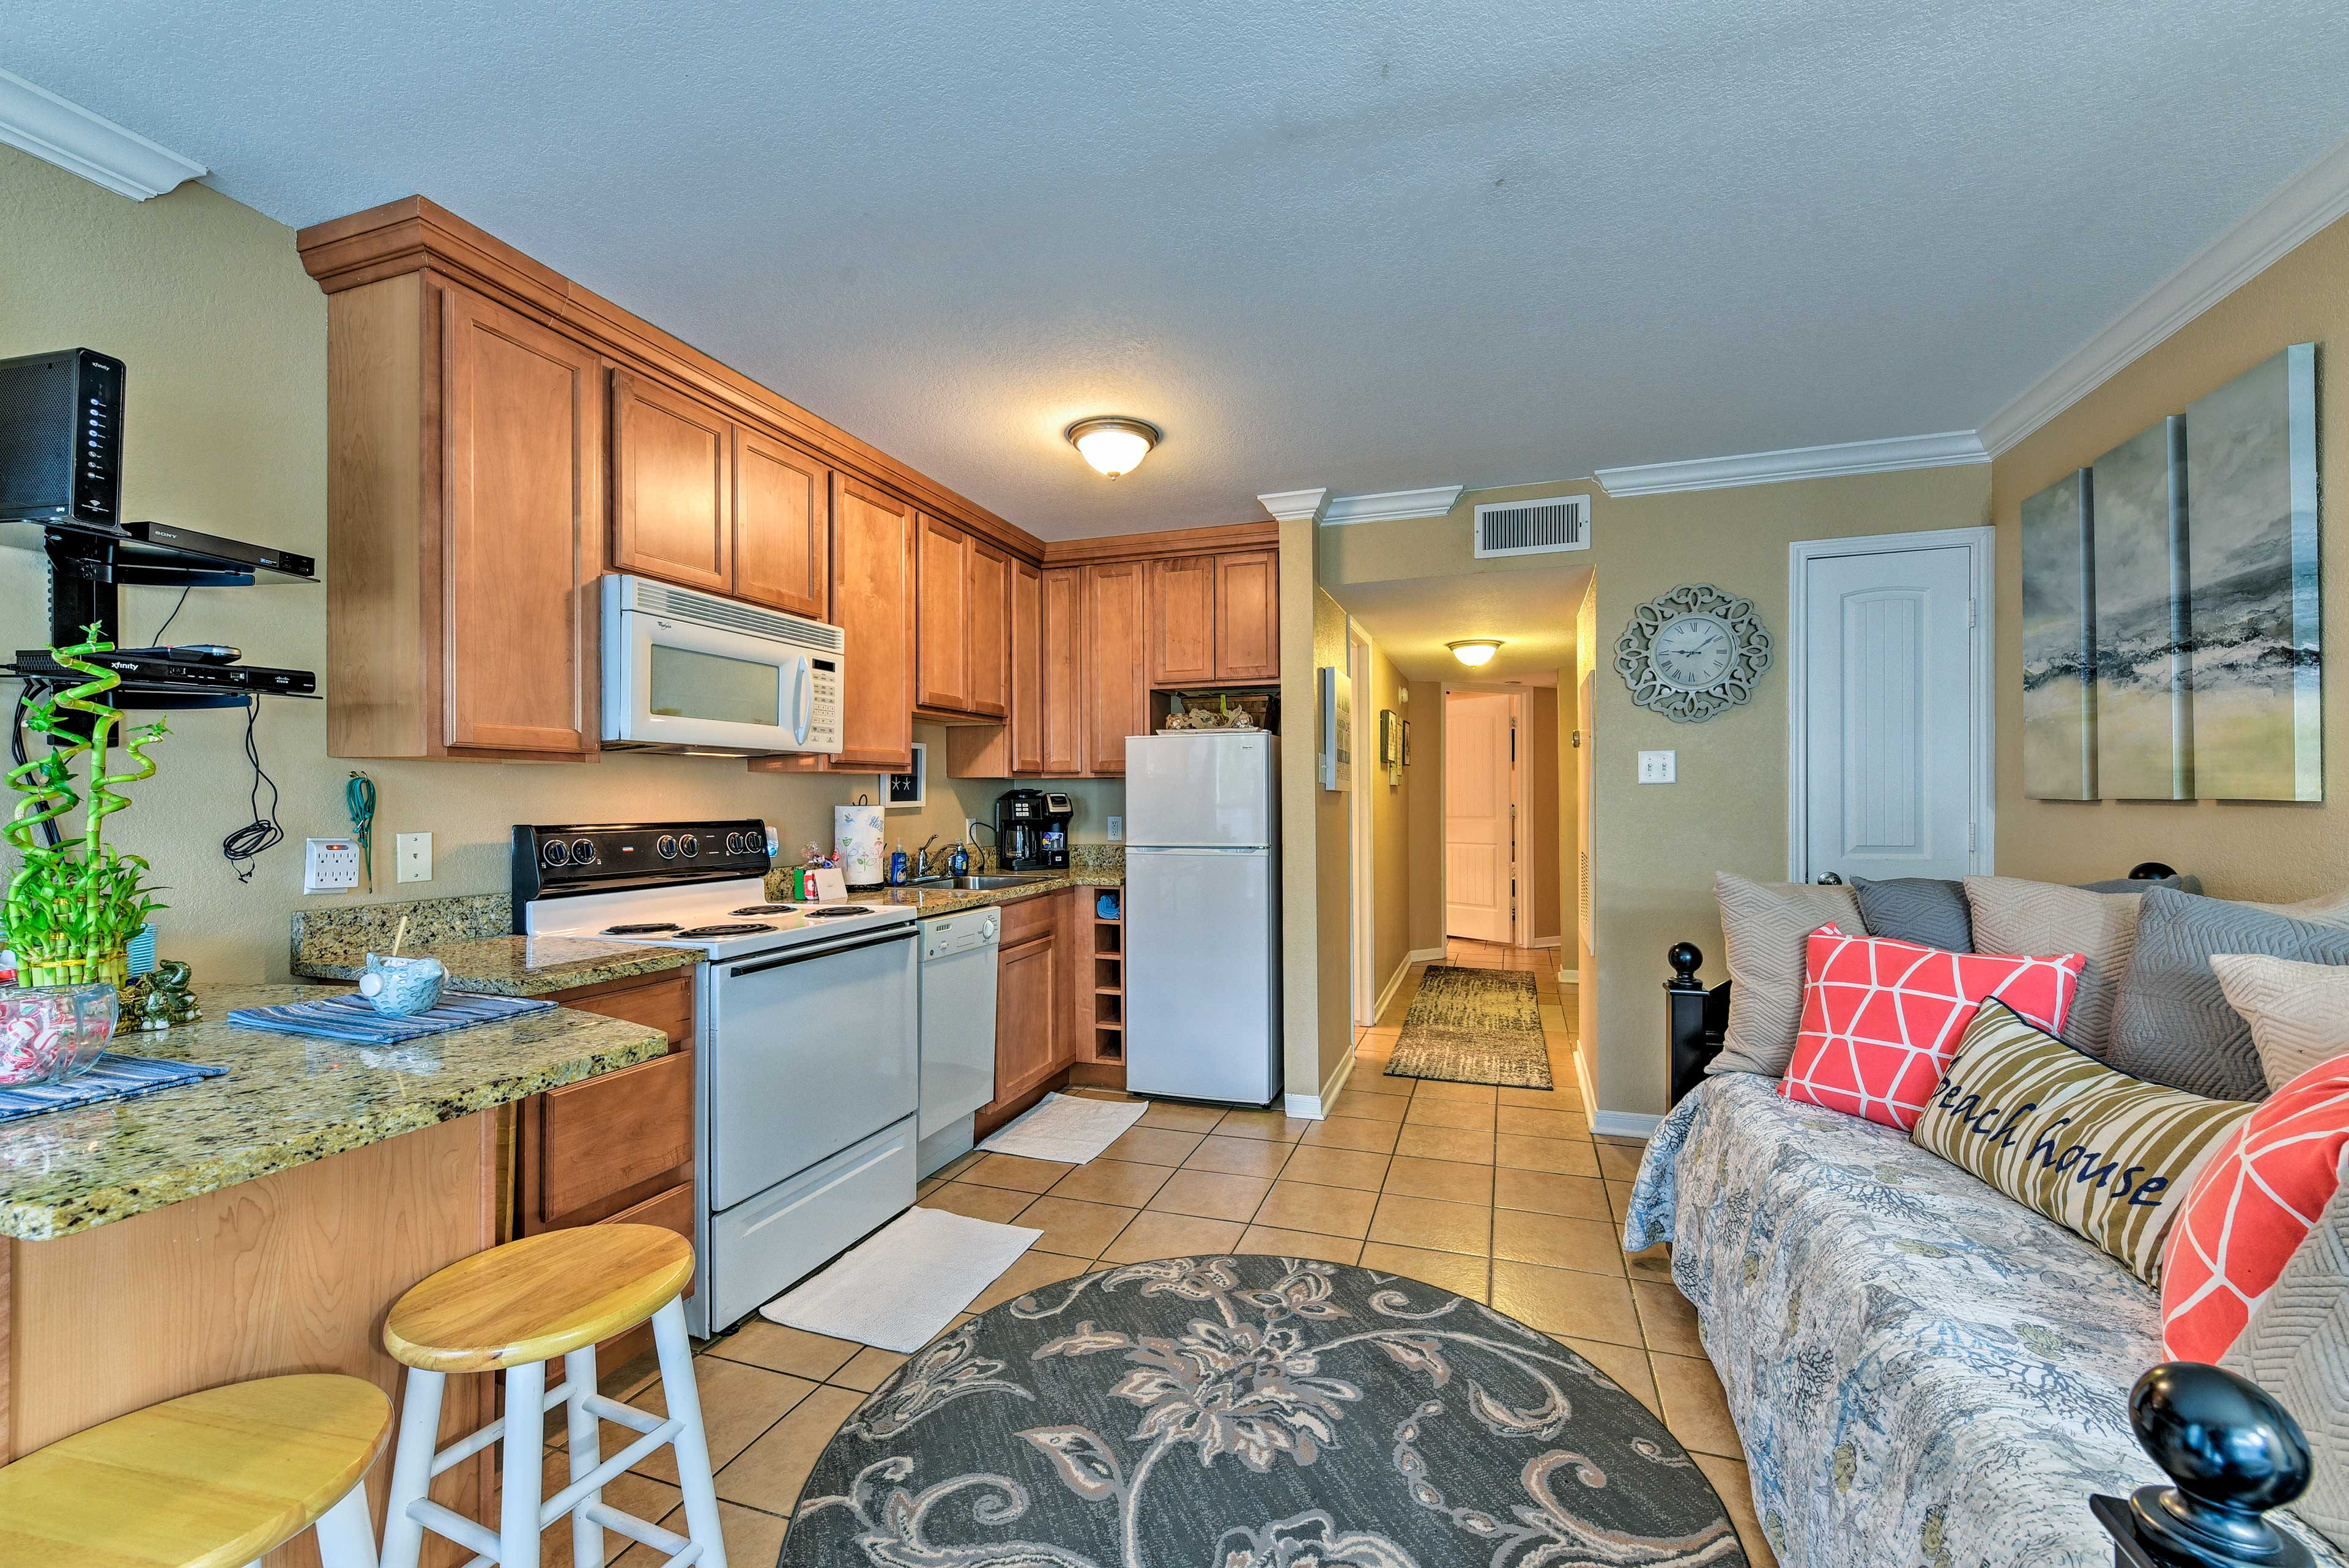 The condo easily hosts up to 6 guests between the sleeper sofa and hallway bunk.